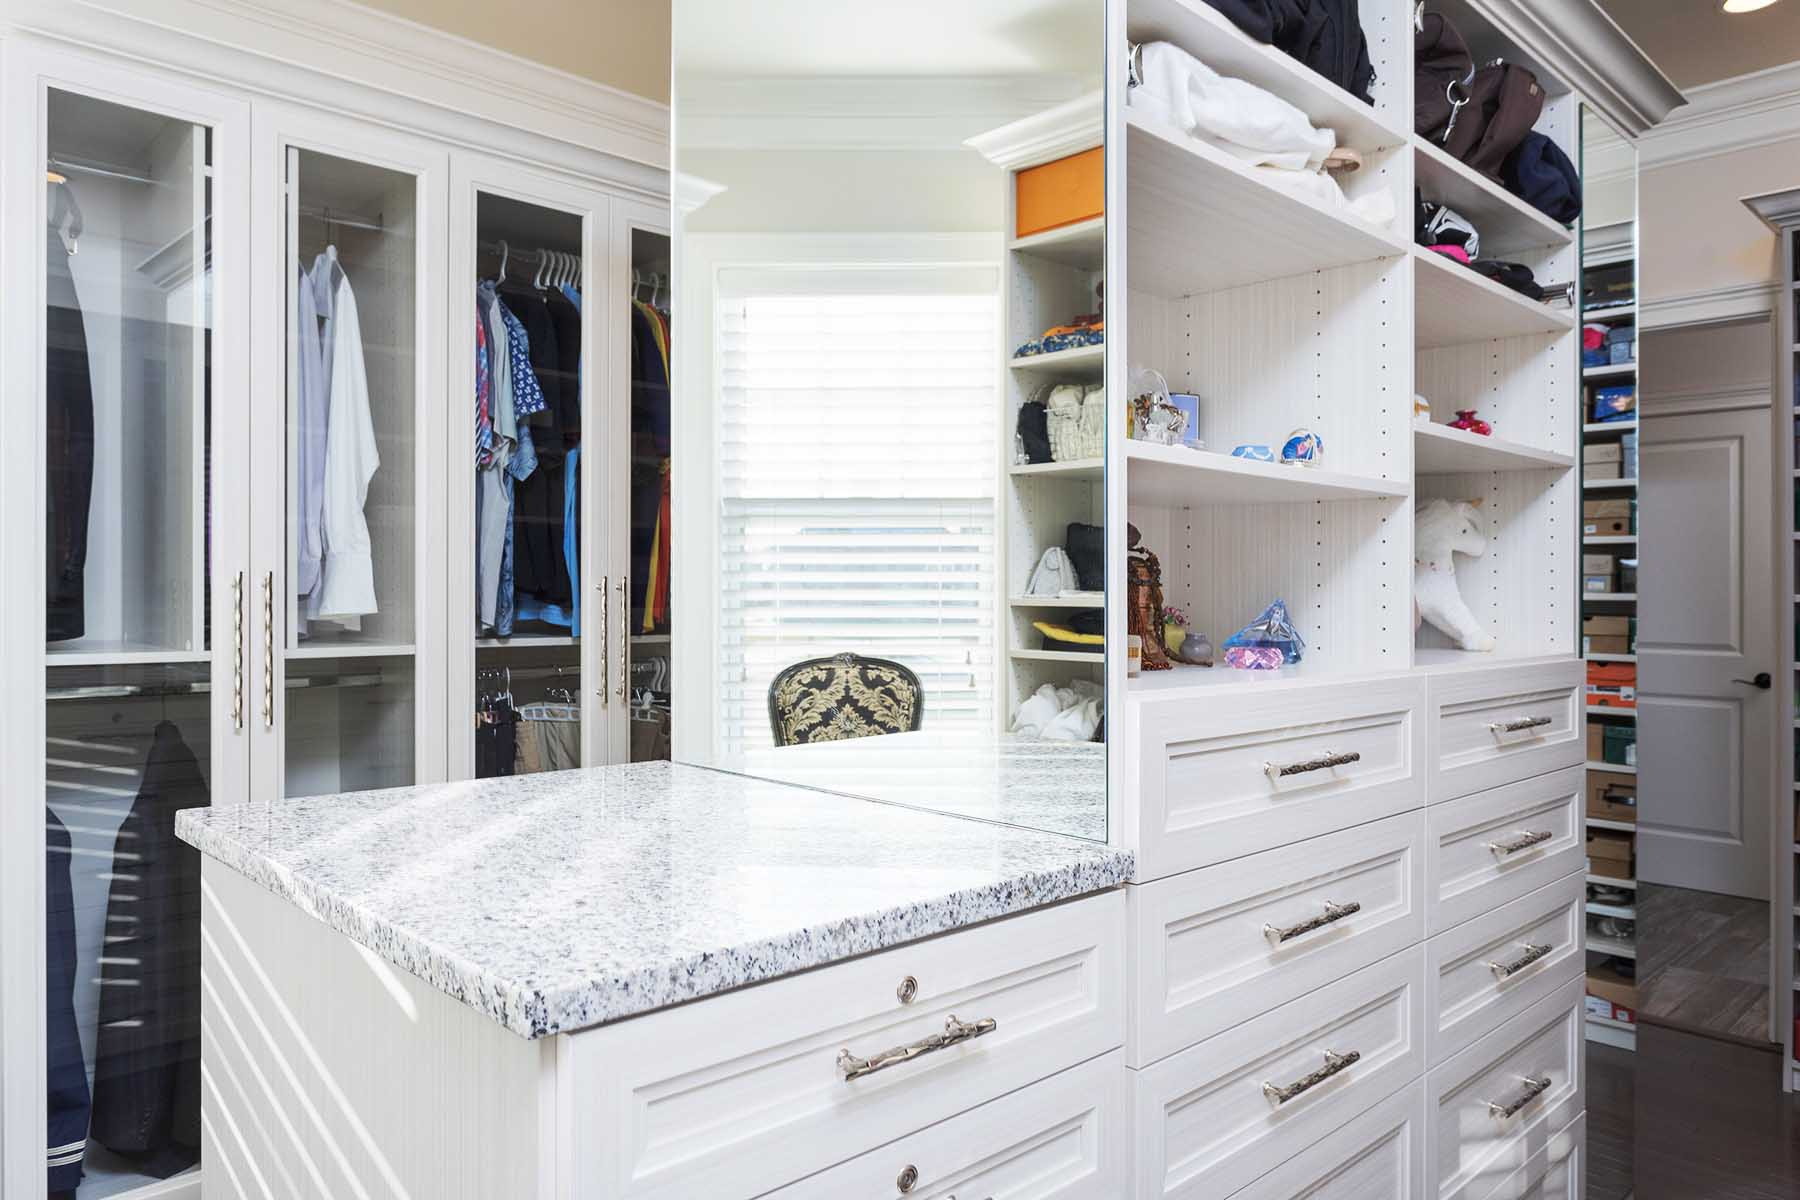 Organizing Your Home: Before and After A Move